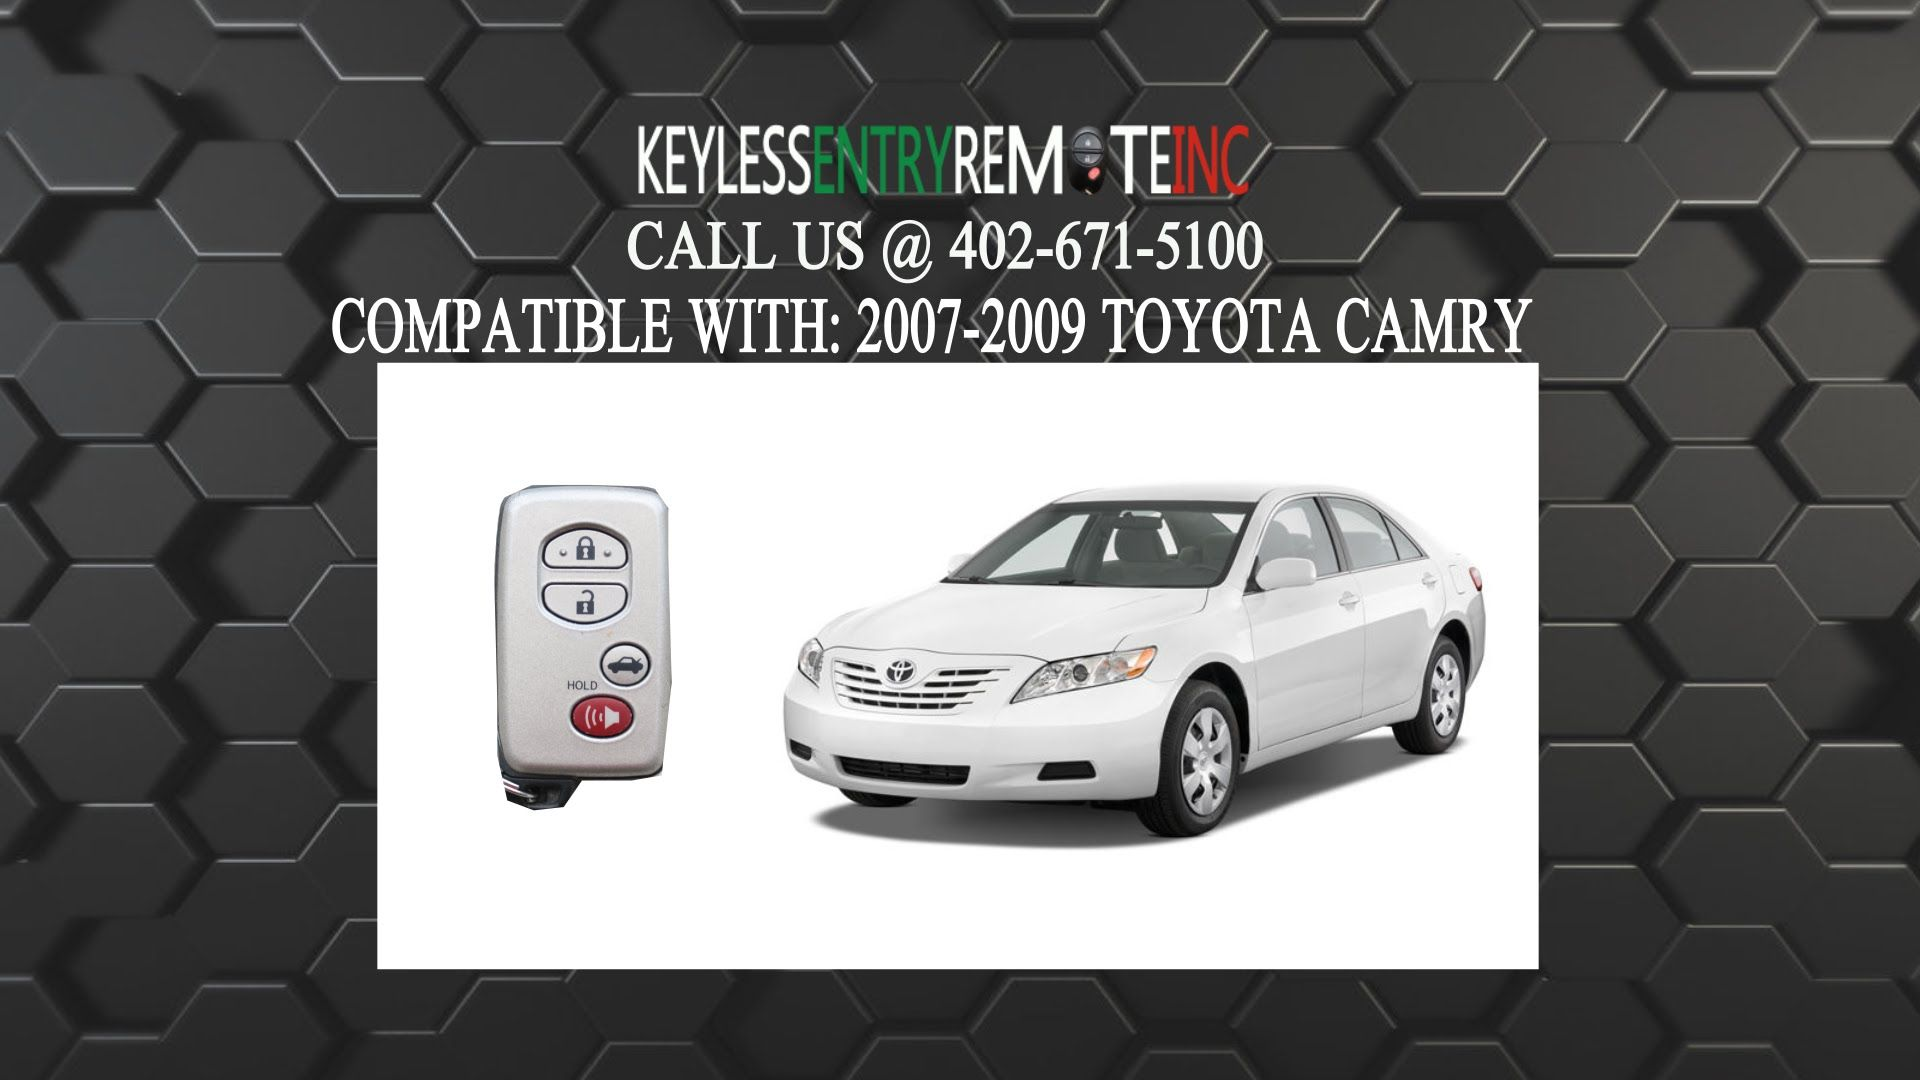 How To Replace Toyota Camry Smart Key Fob Battery 2007